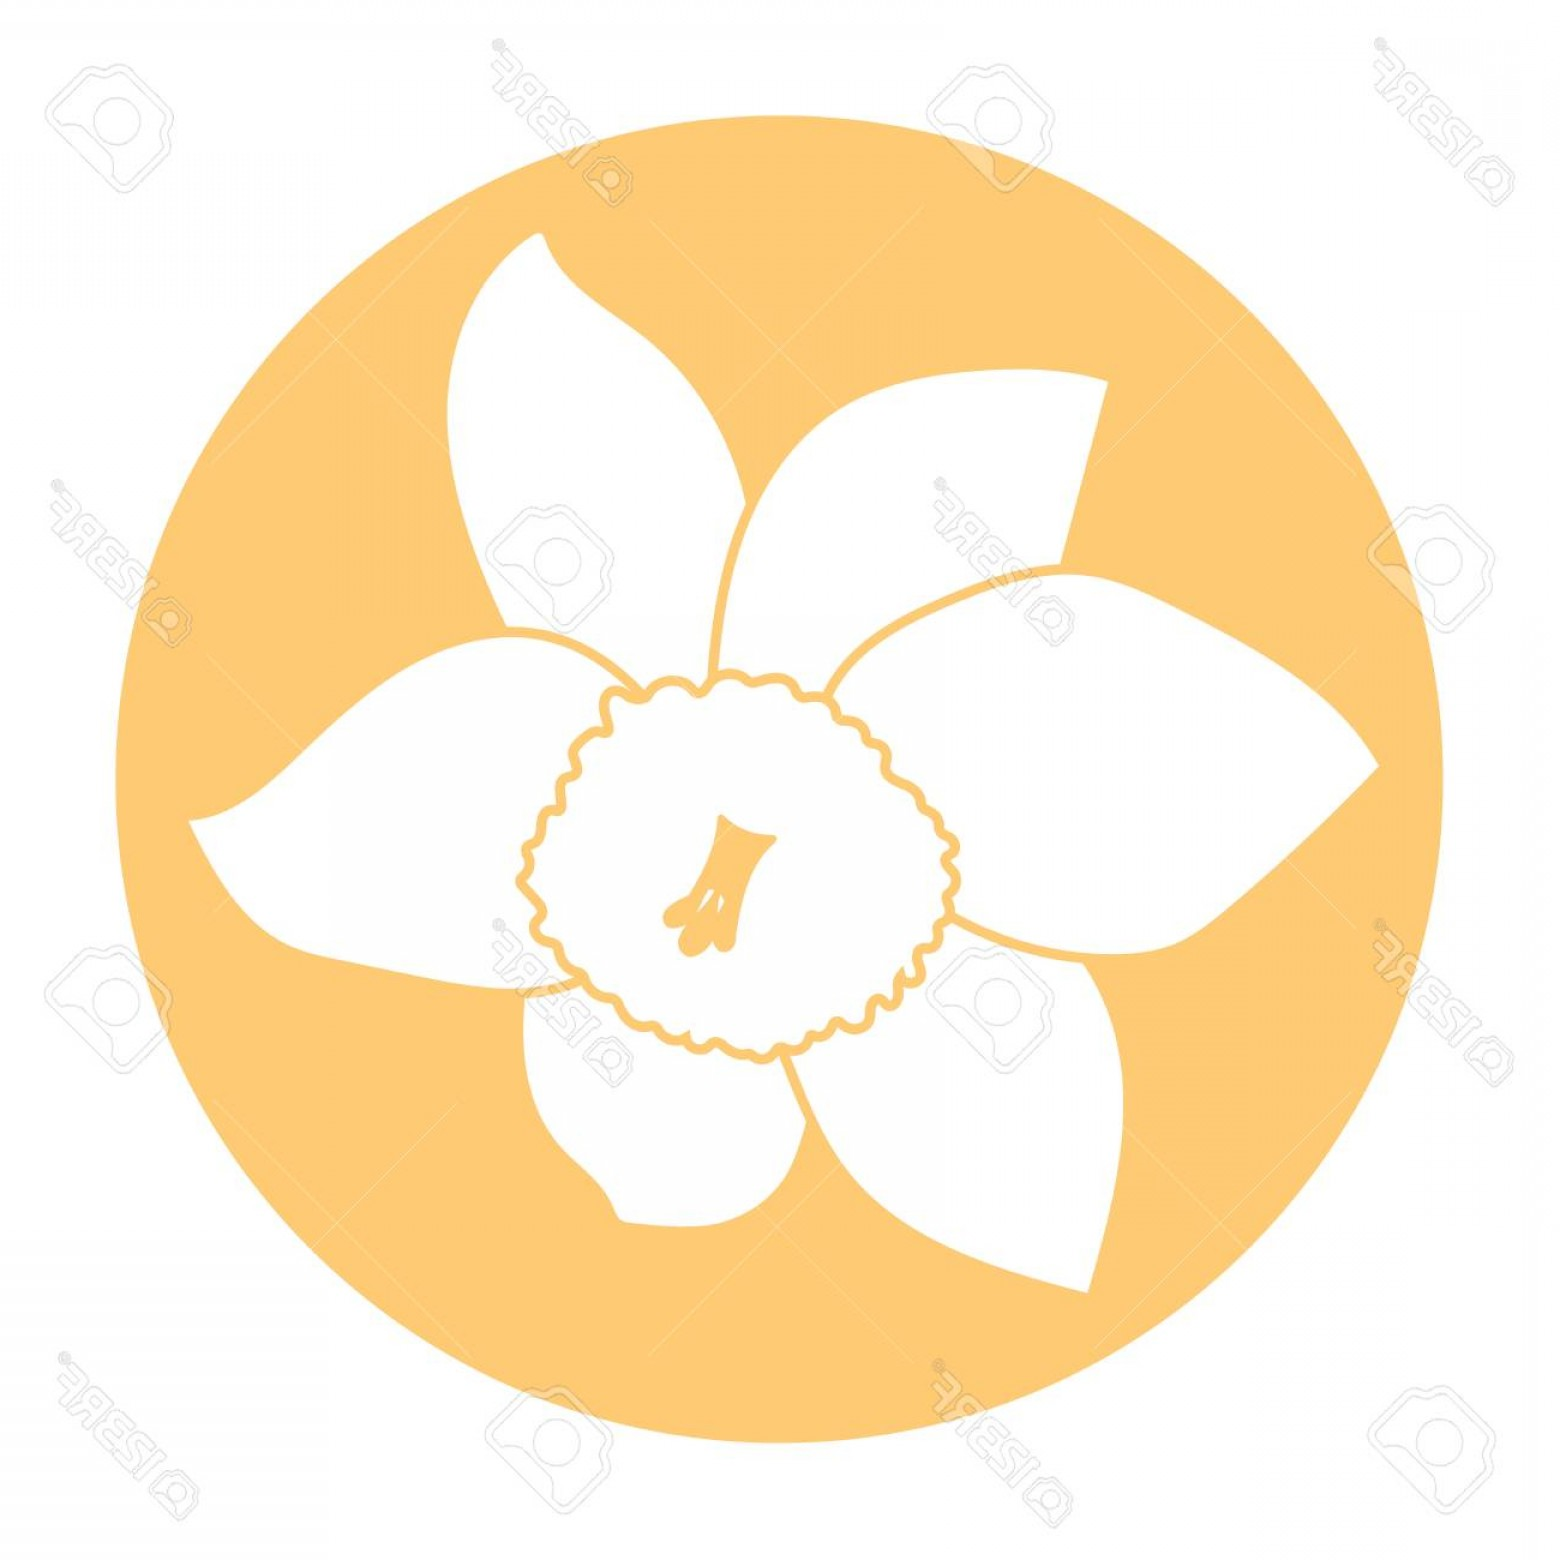 Icon Of Flower Vectors: Photostock Vector Spring Flower Icon White Narcissus Flower Orange Round Circle Flat Icon Vector